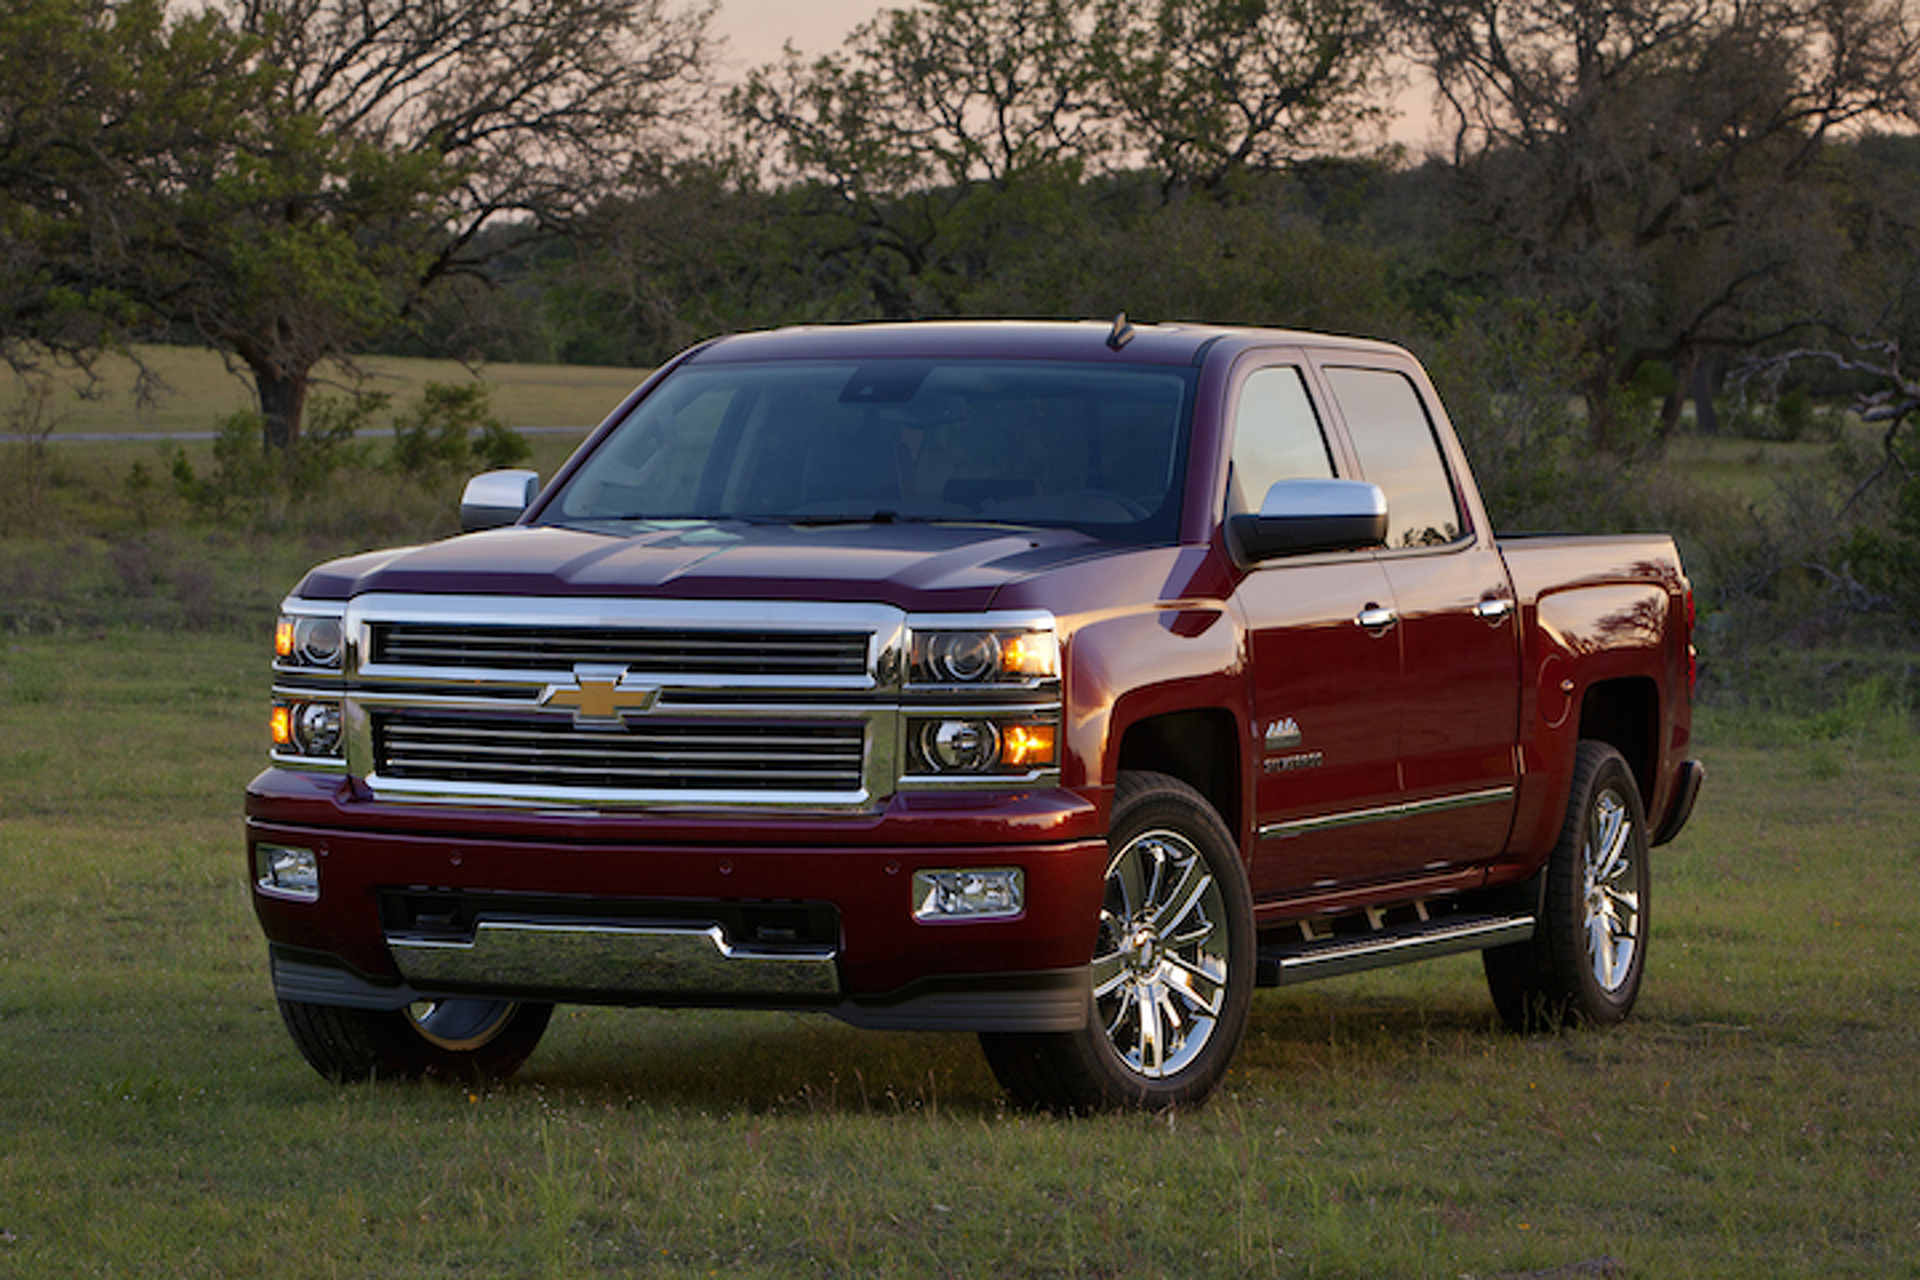 GM Recalls Another 3.2 Million Vehicles, Marking 20 Million Recalled To Date